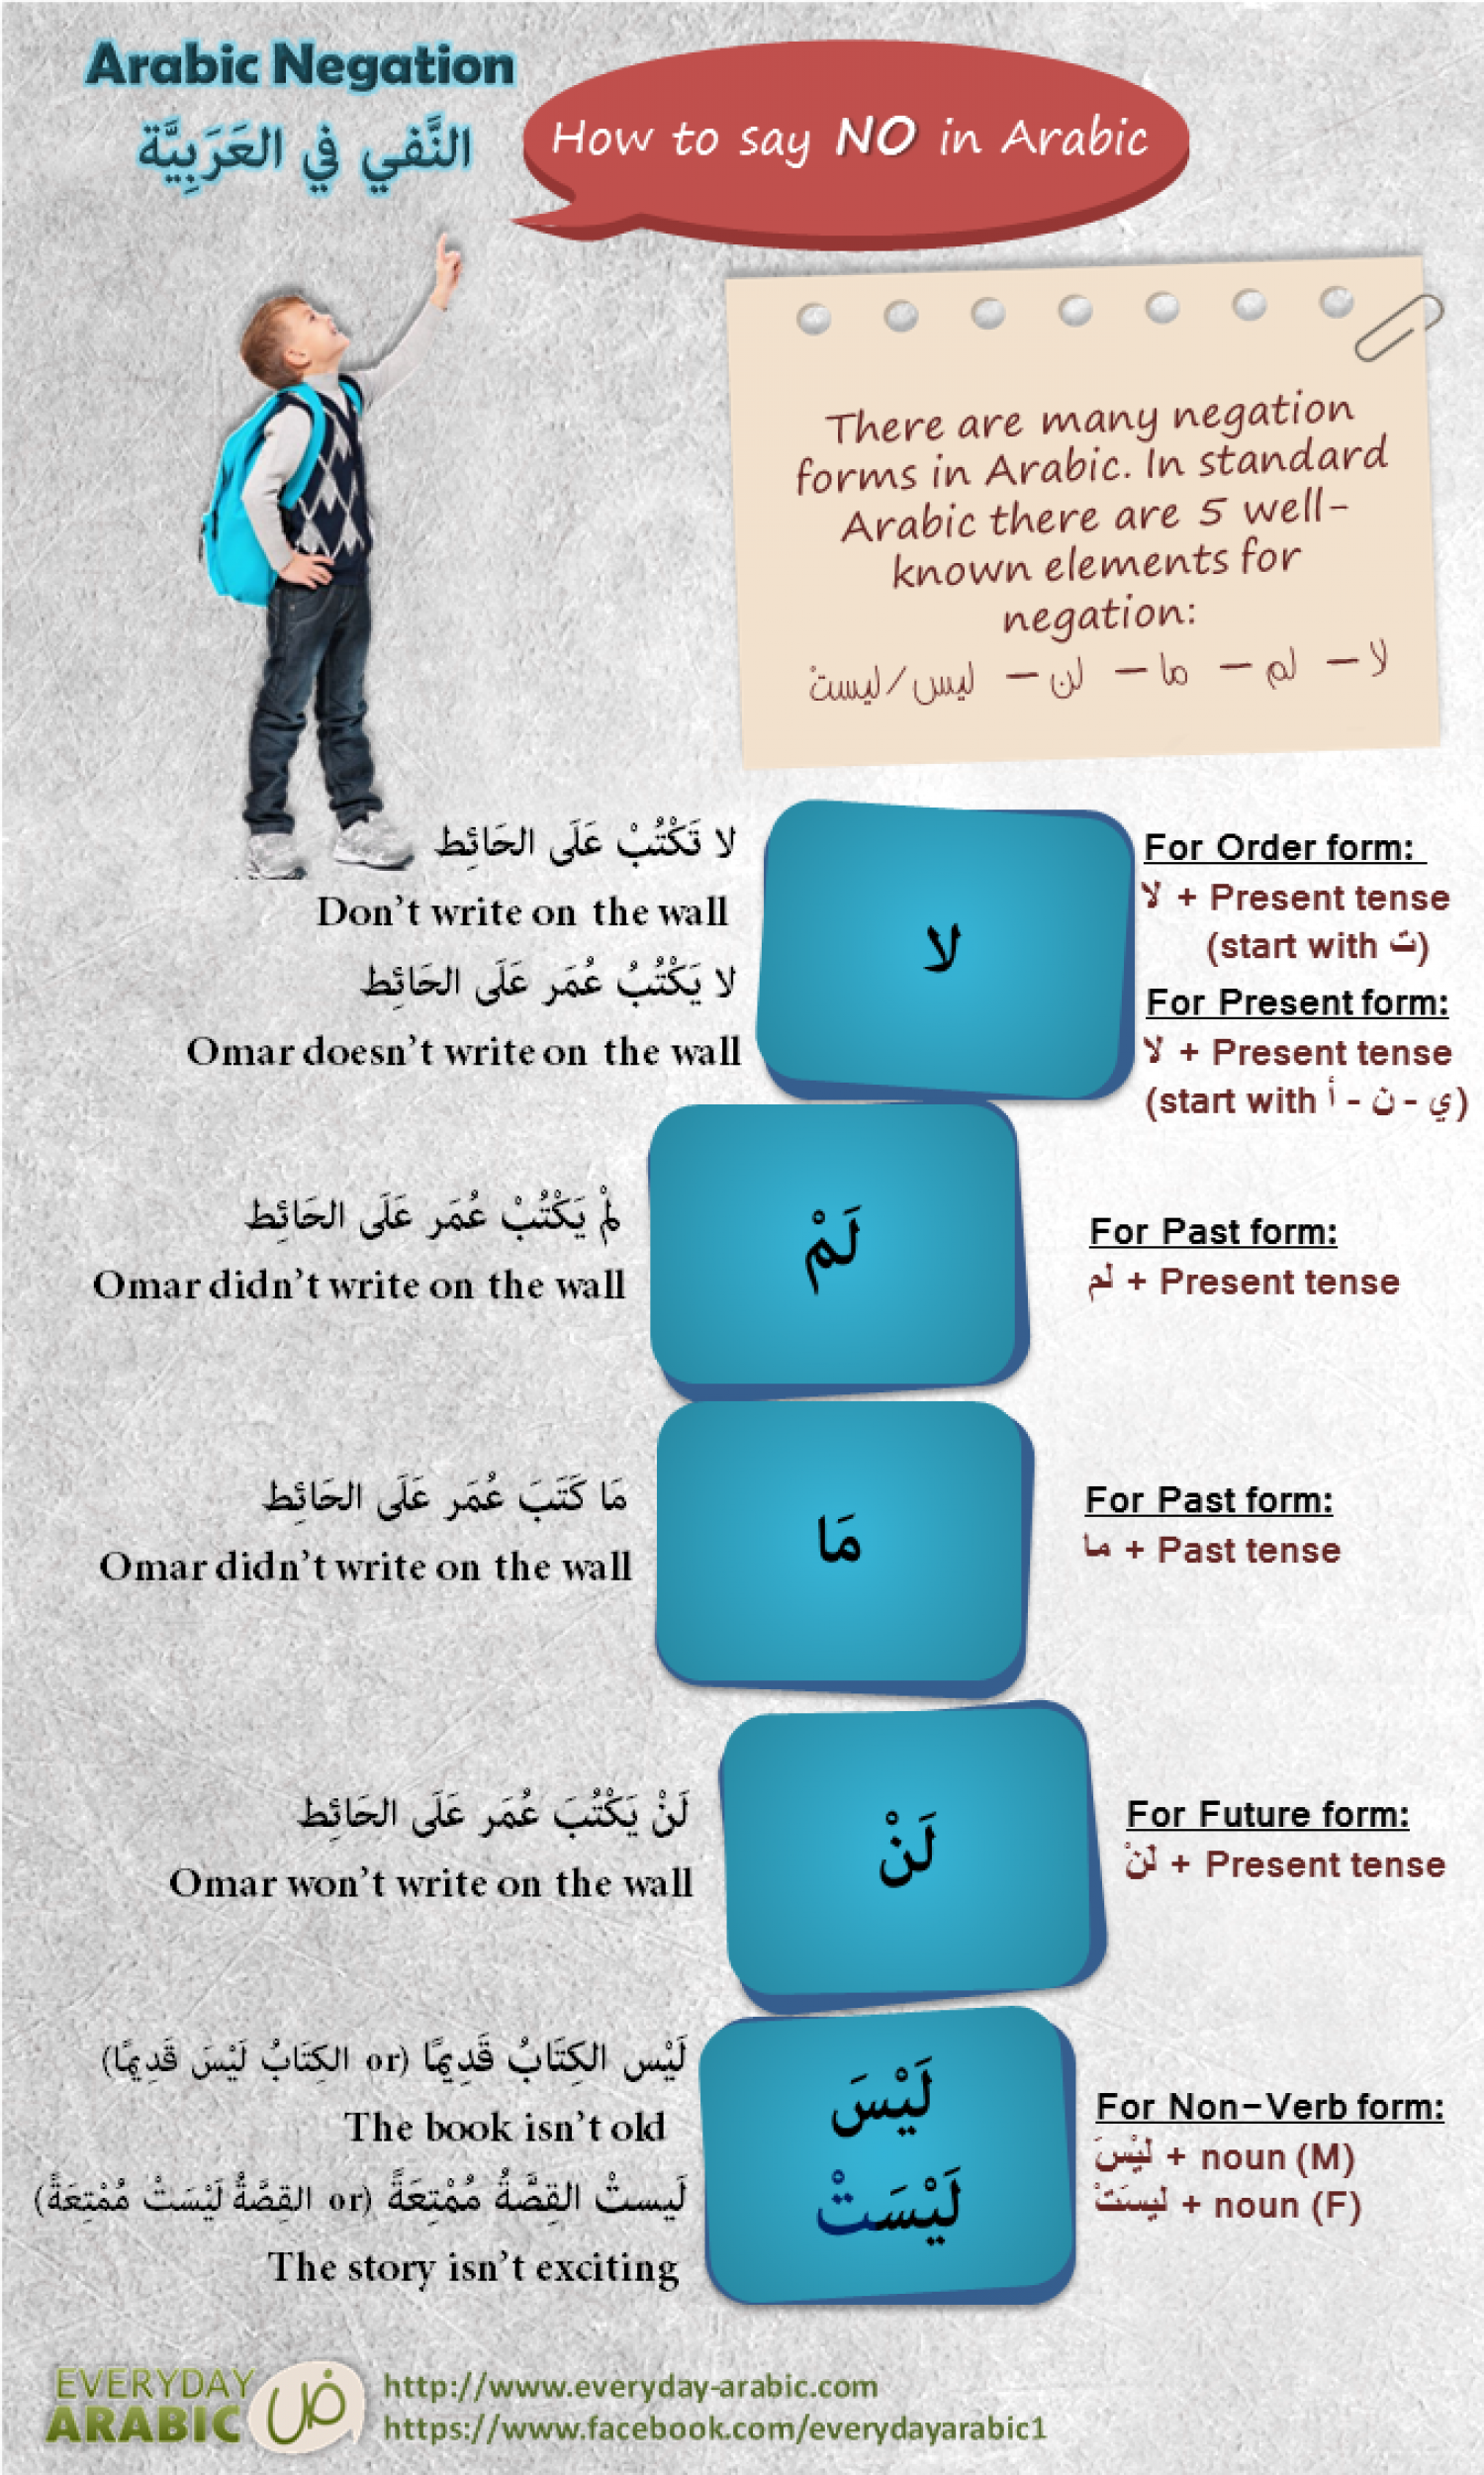 How to say NO in Arabic Infographic